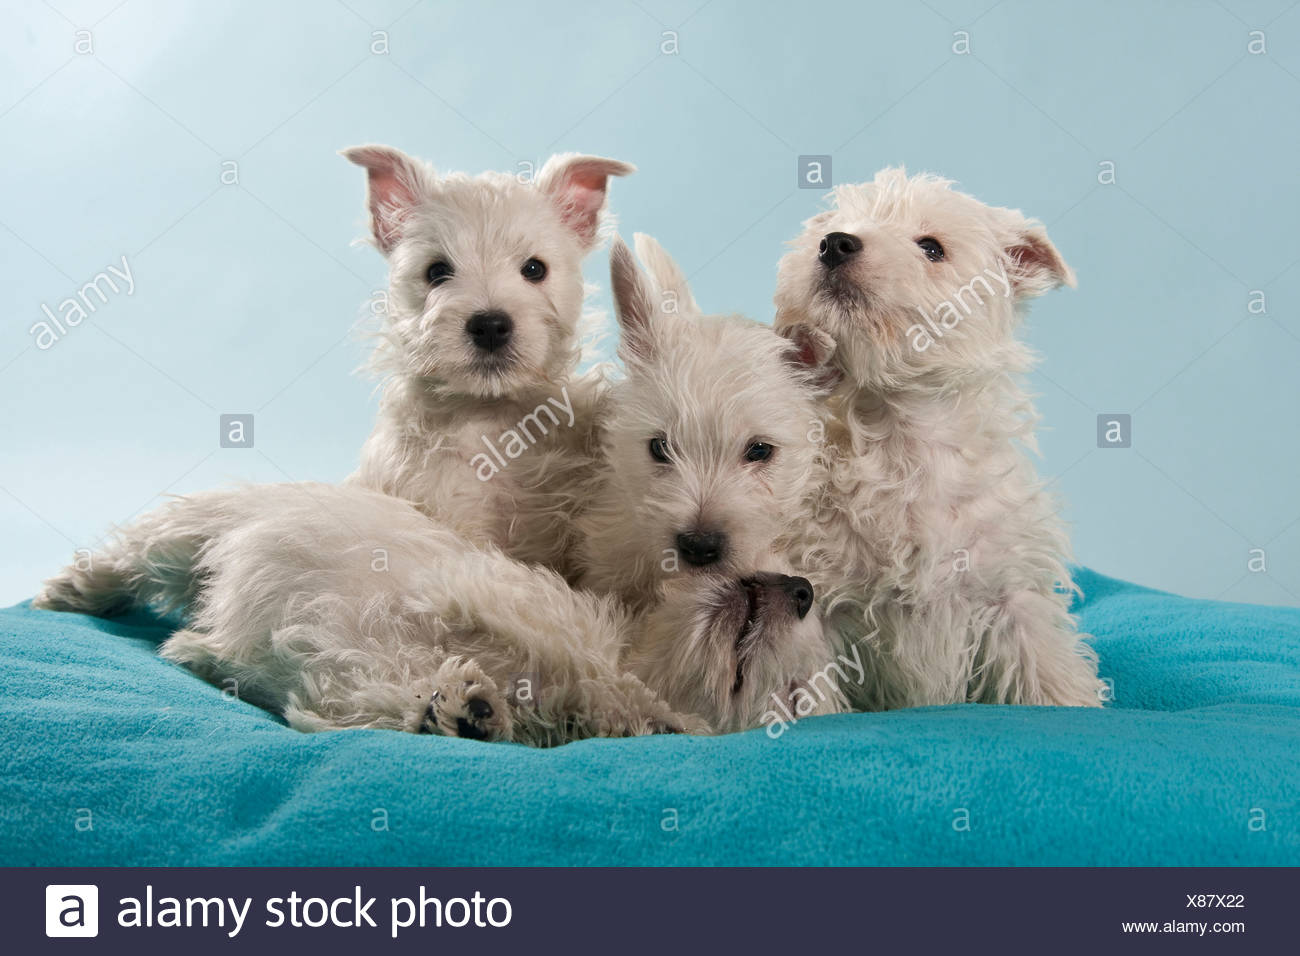 Group of West Highland White Terriers, Westie puppies - Stock Image